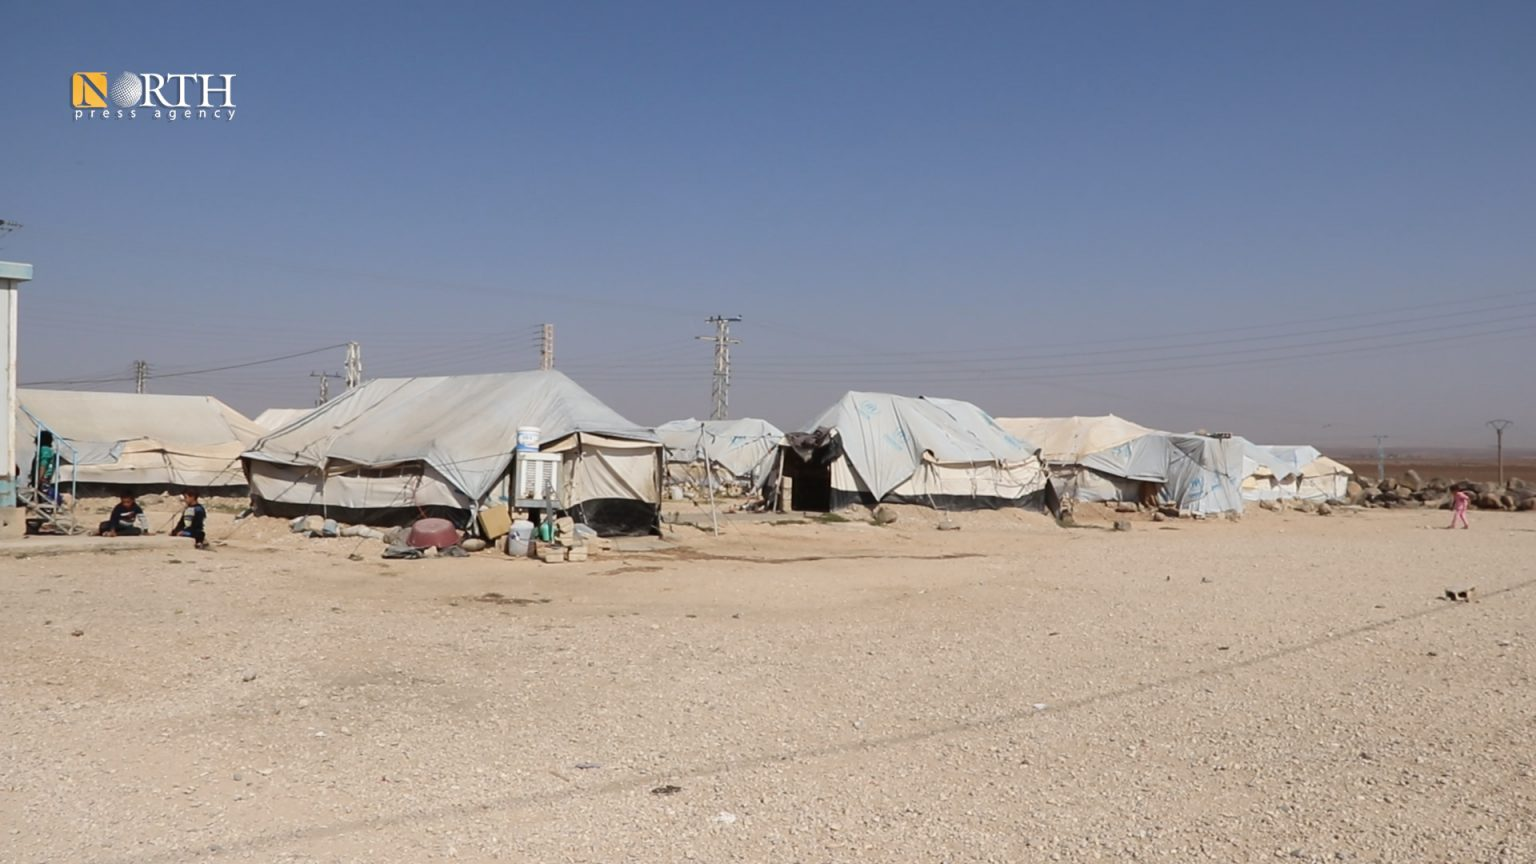 IDPs in Northeast Syria Live off Daily-Paid Jobs, Struggle With Lockdown